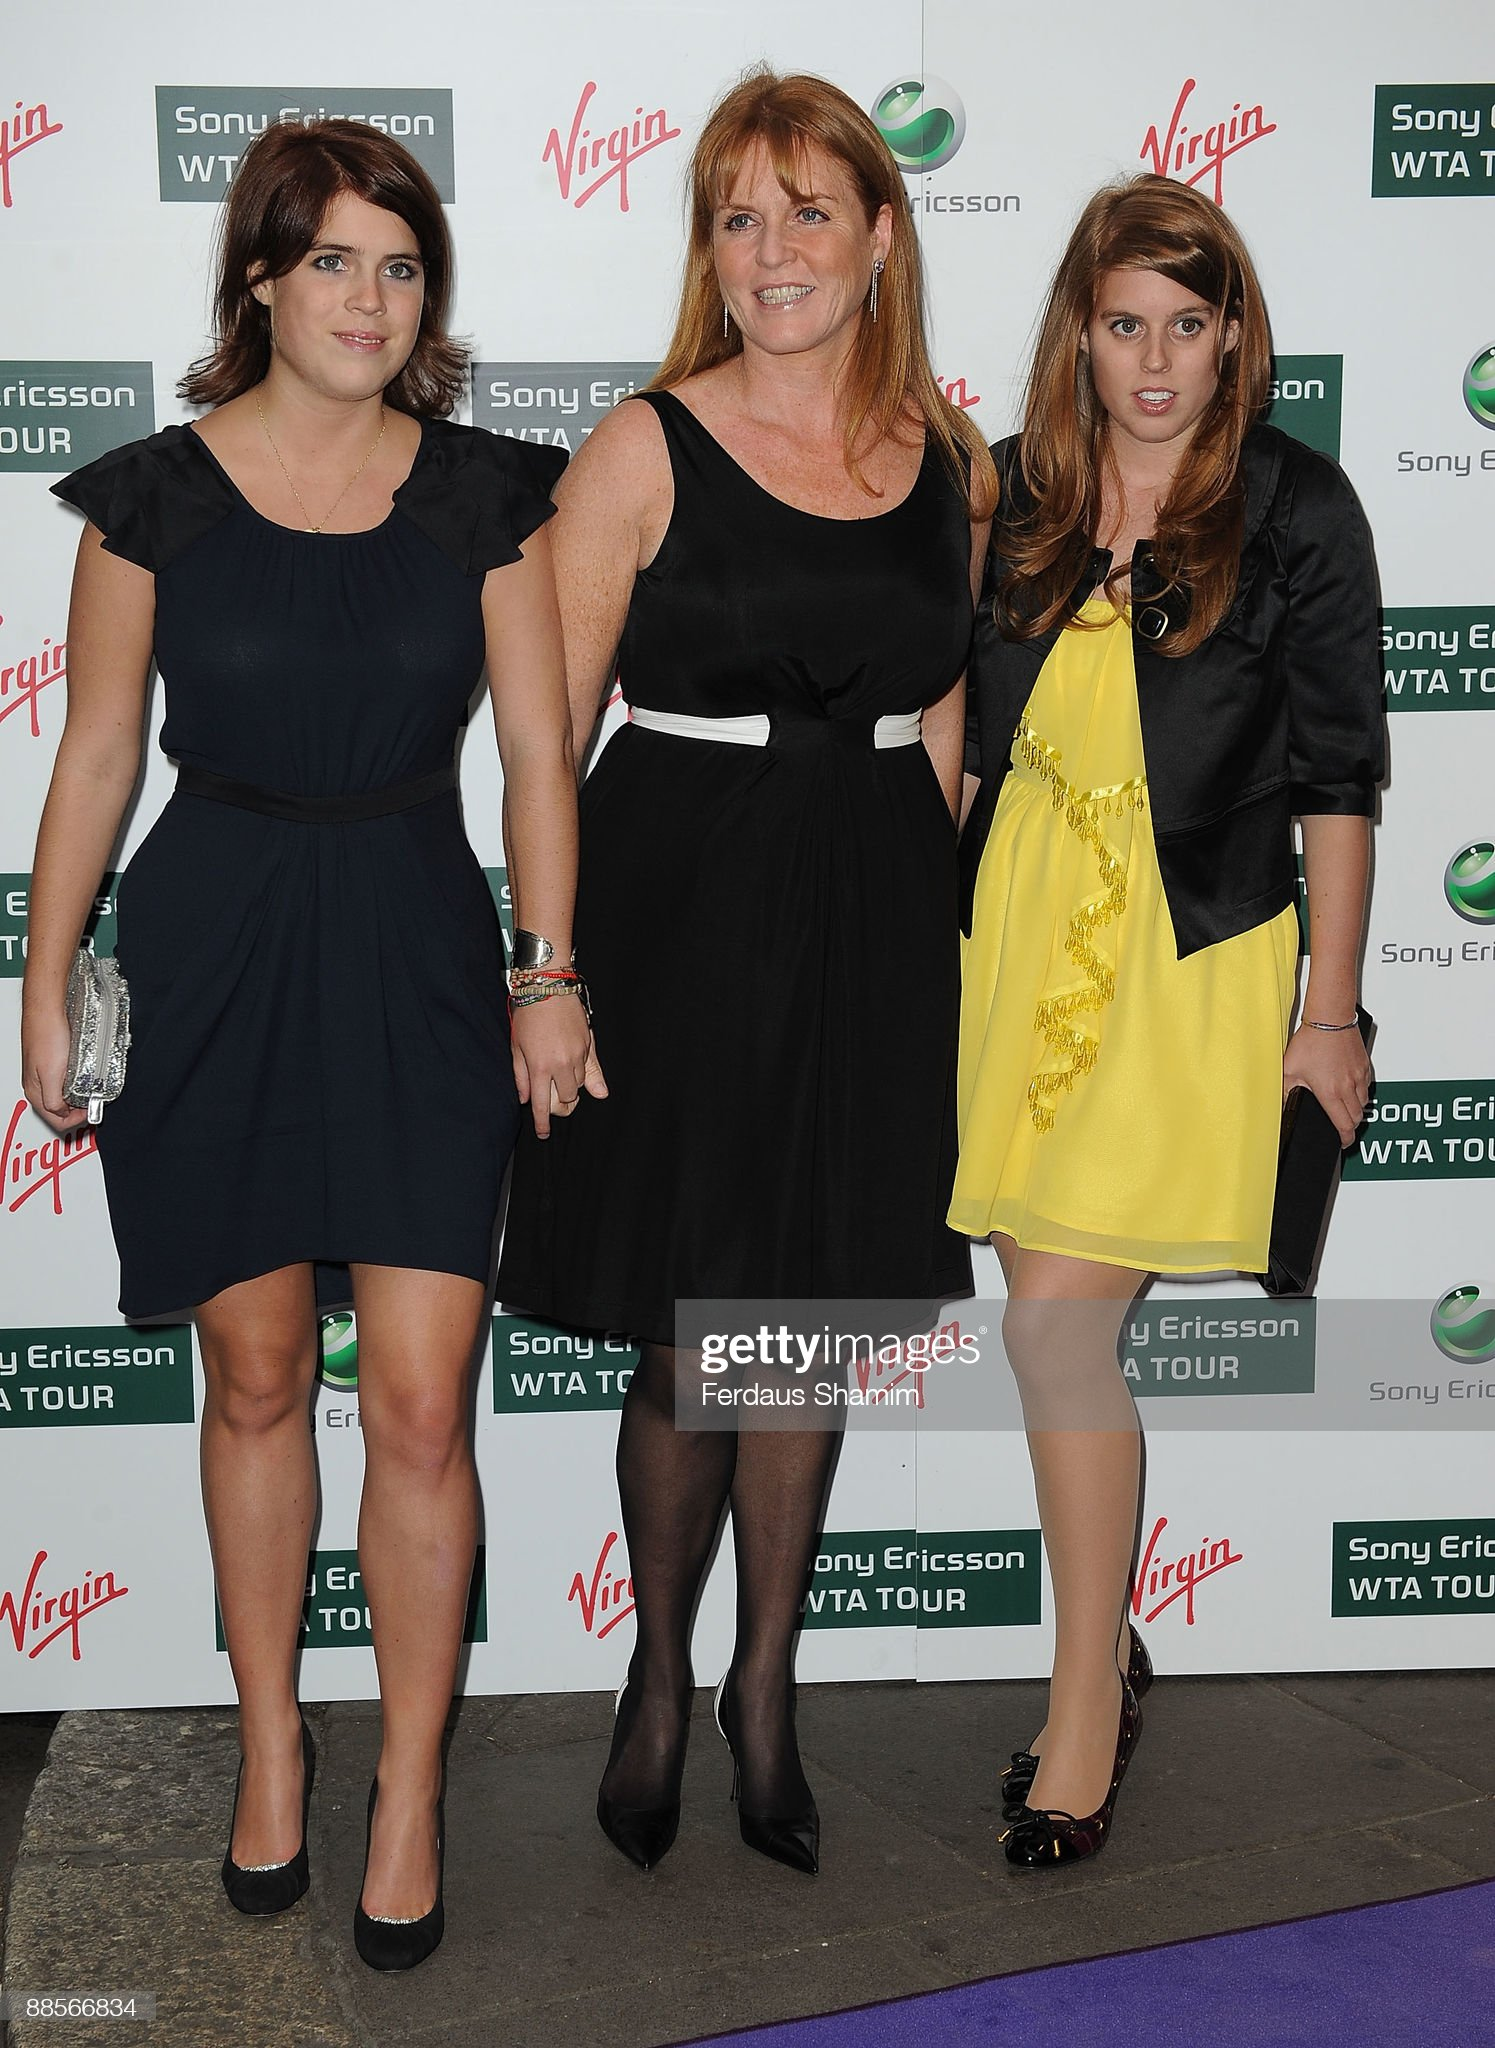 Ralph Lauren and Sony Ericsson Host WTA Tour Pre-Wimbledon Party : News Photo